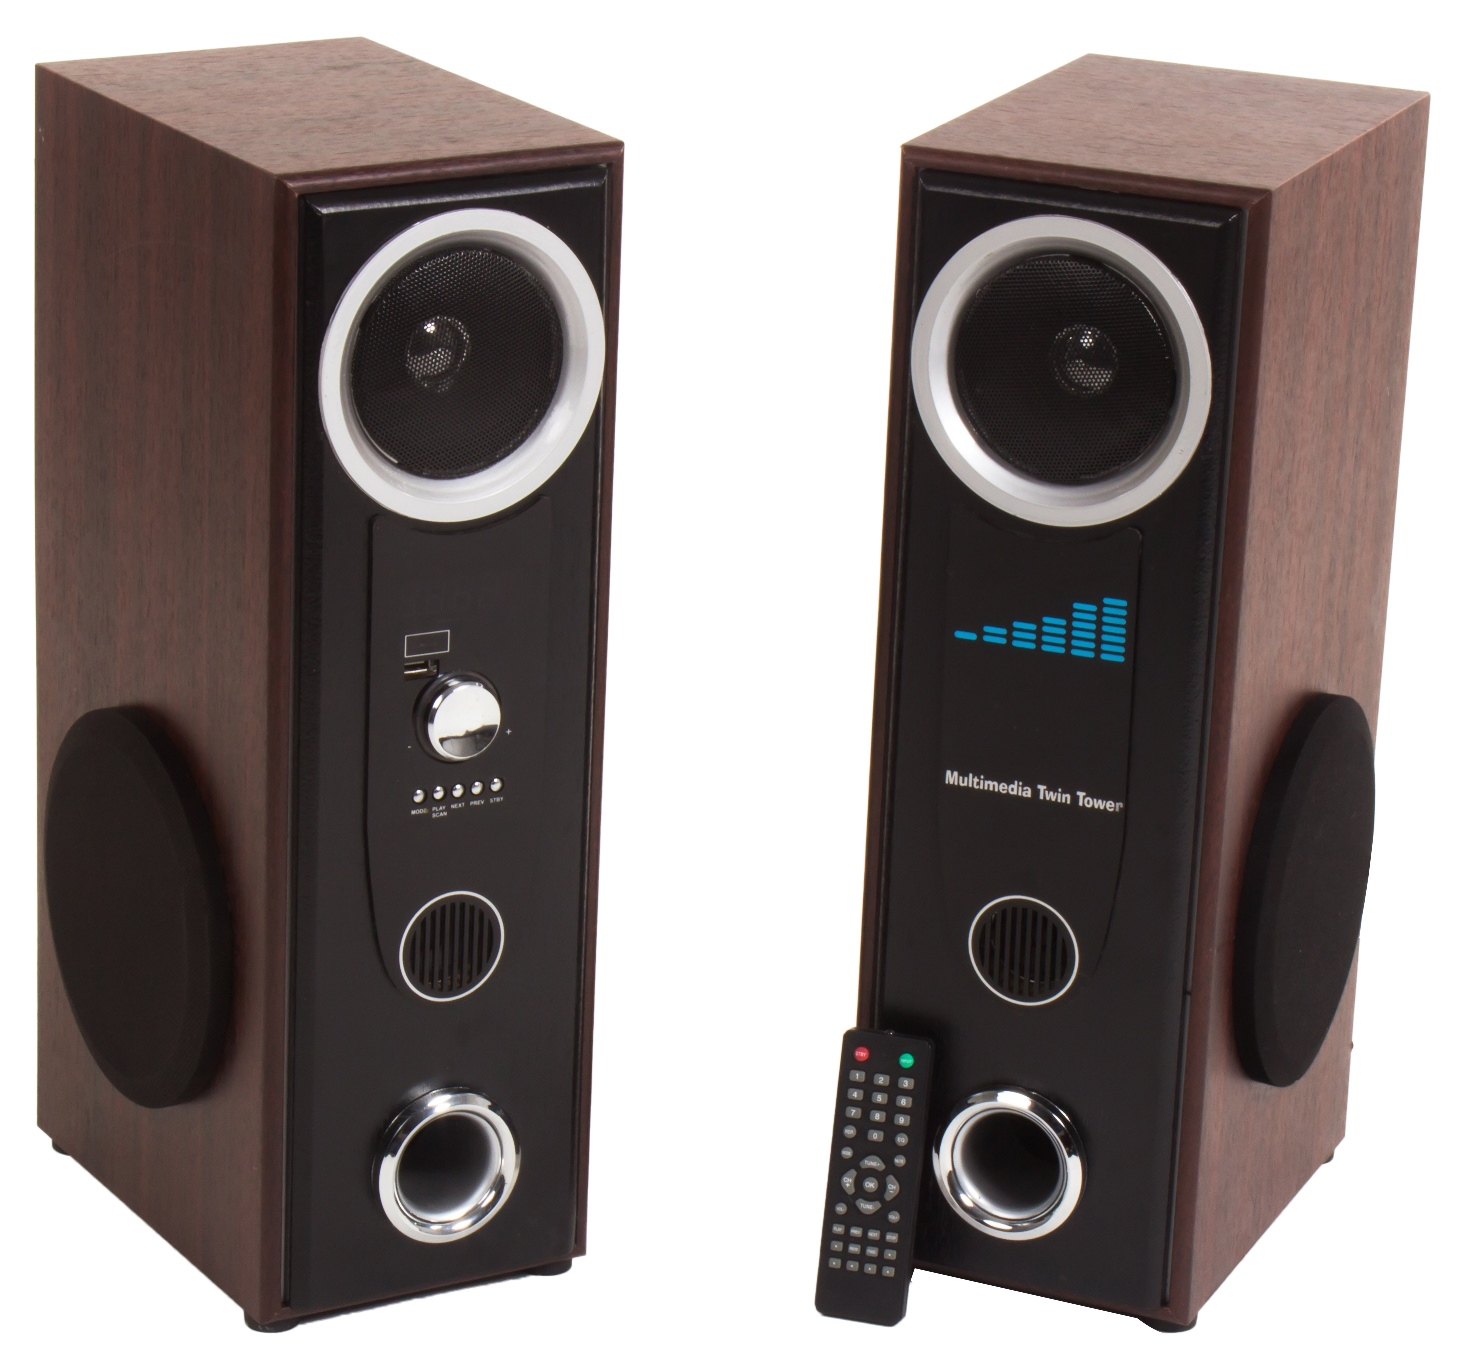 Envent Bluetooth Mini Tower RockU With 120W RMS Wired Home Audio Speaker: Buy Online From